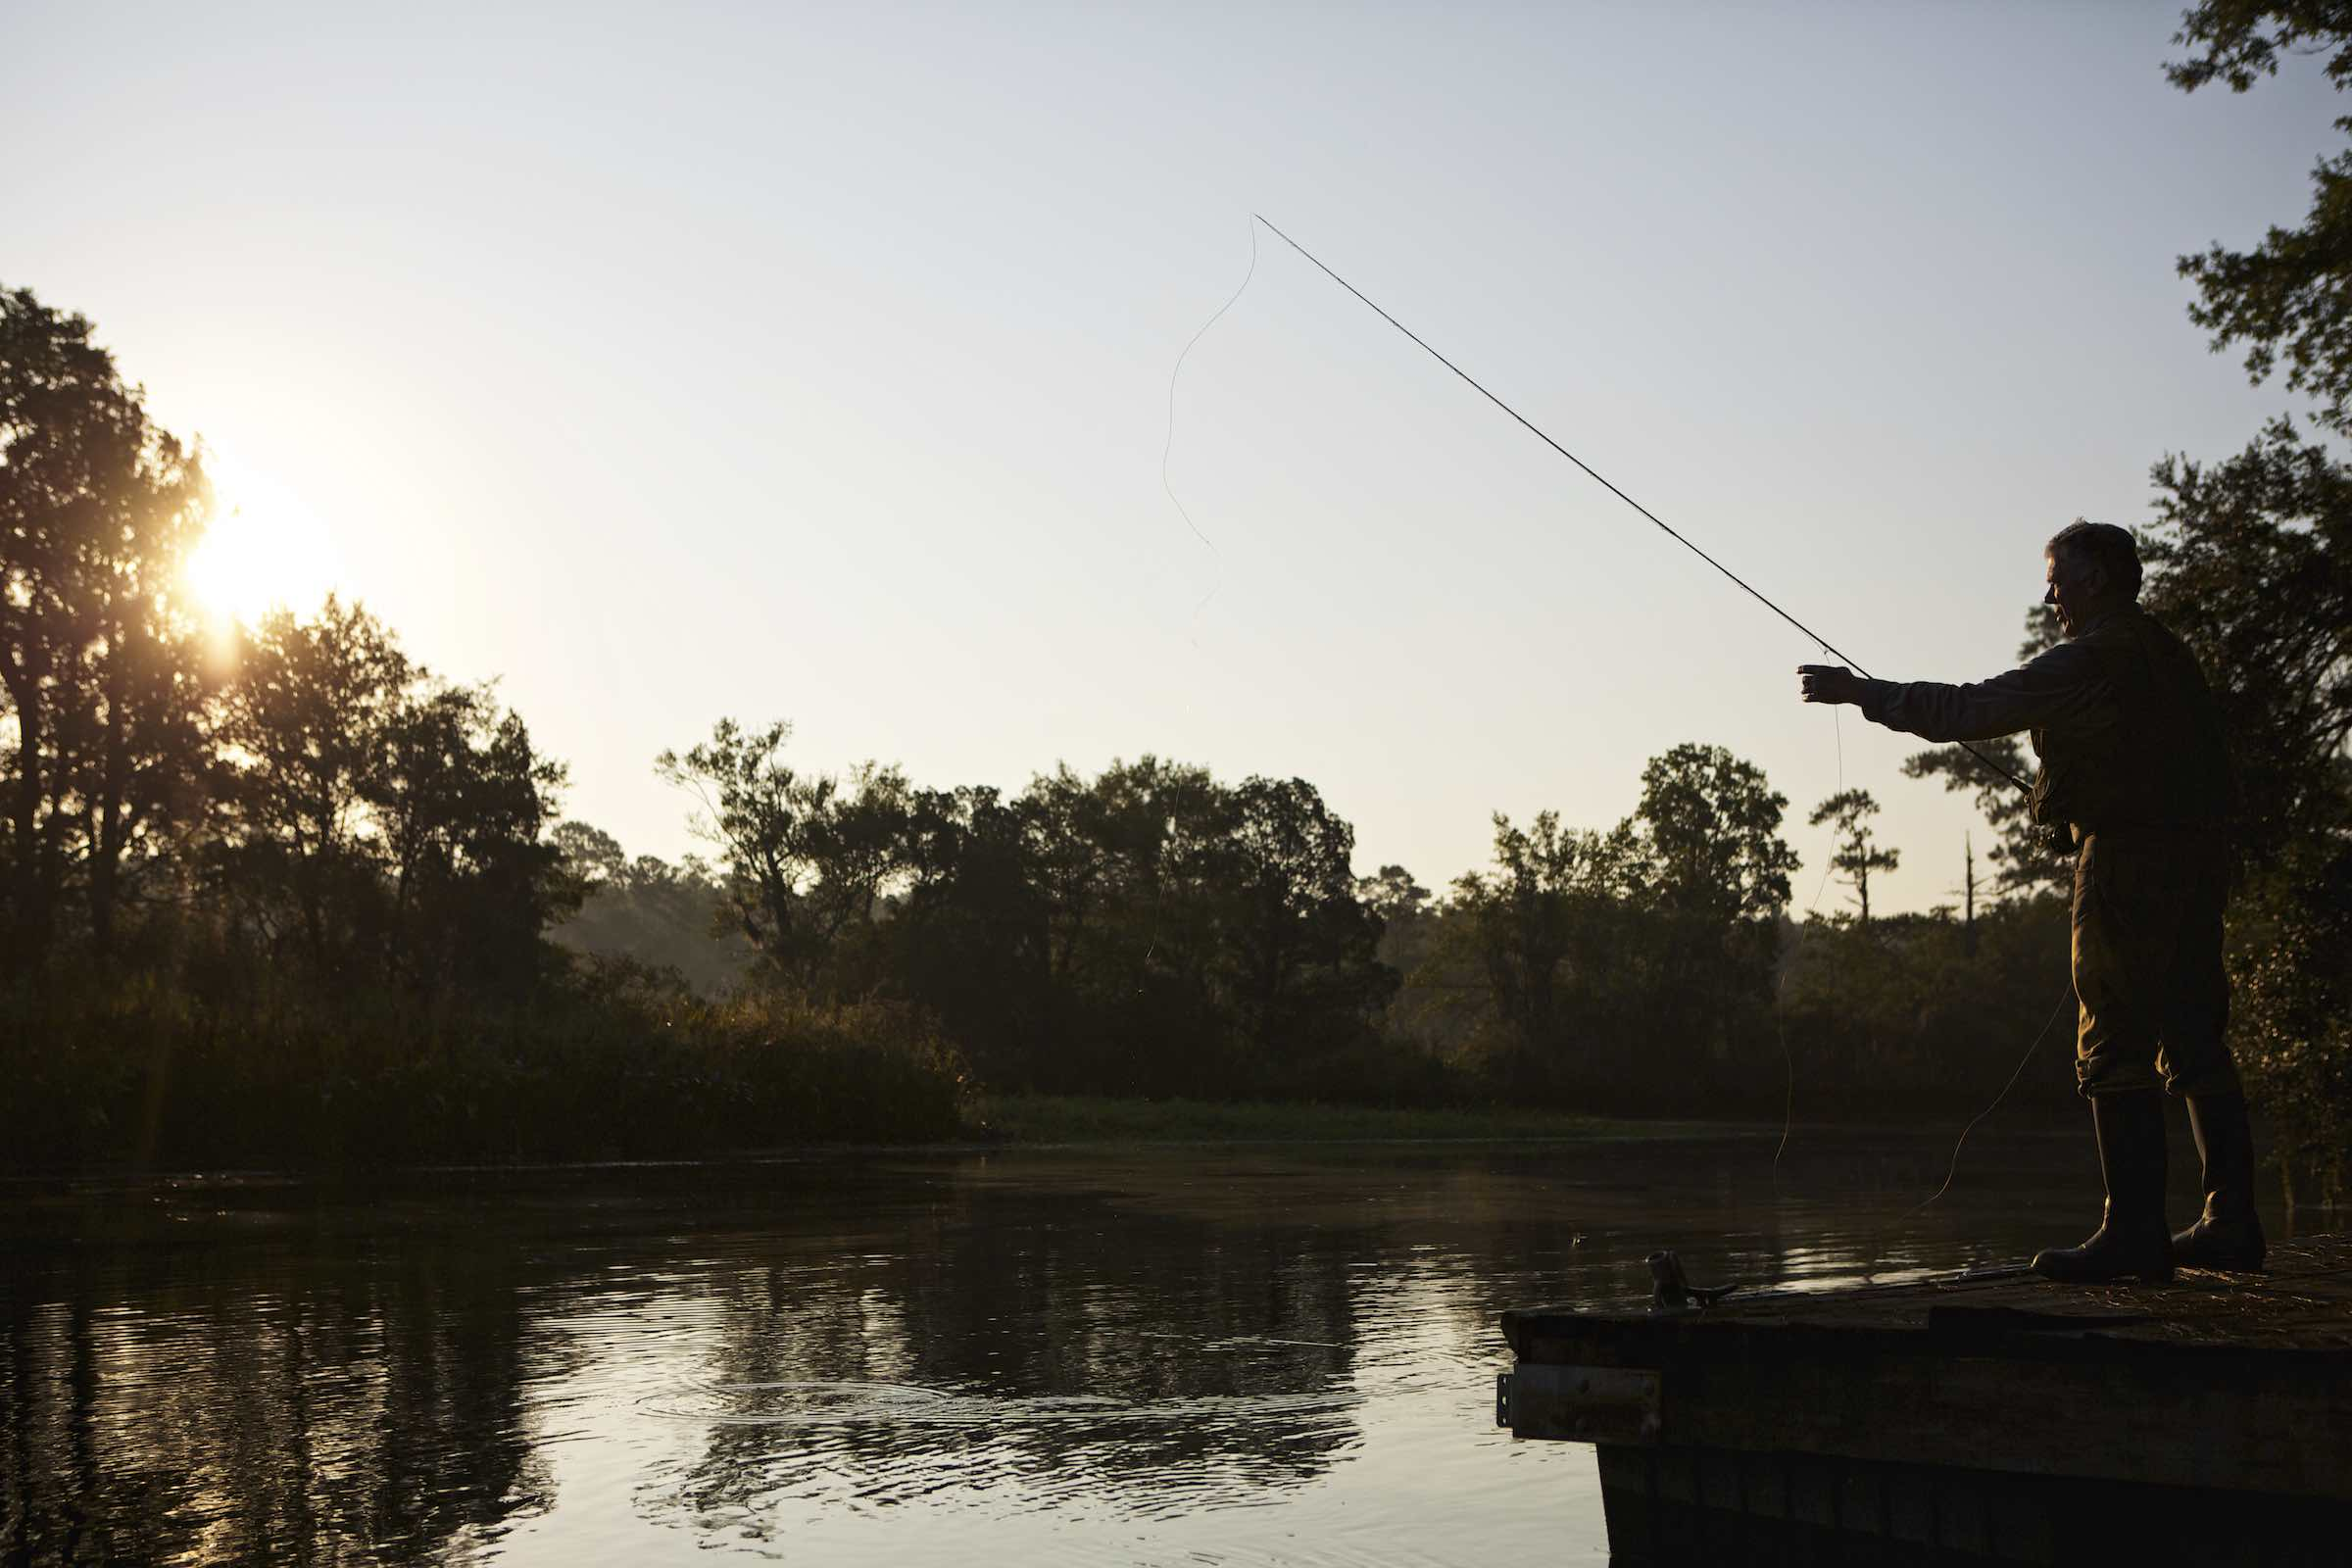 Jody Horton Photography - Fisherman standing on a dock at sunset while casting a line into the river.